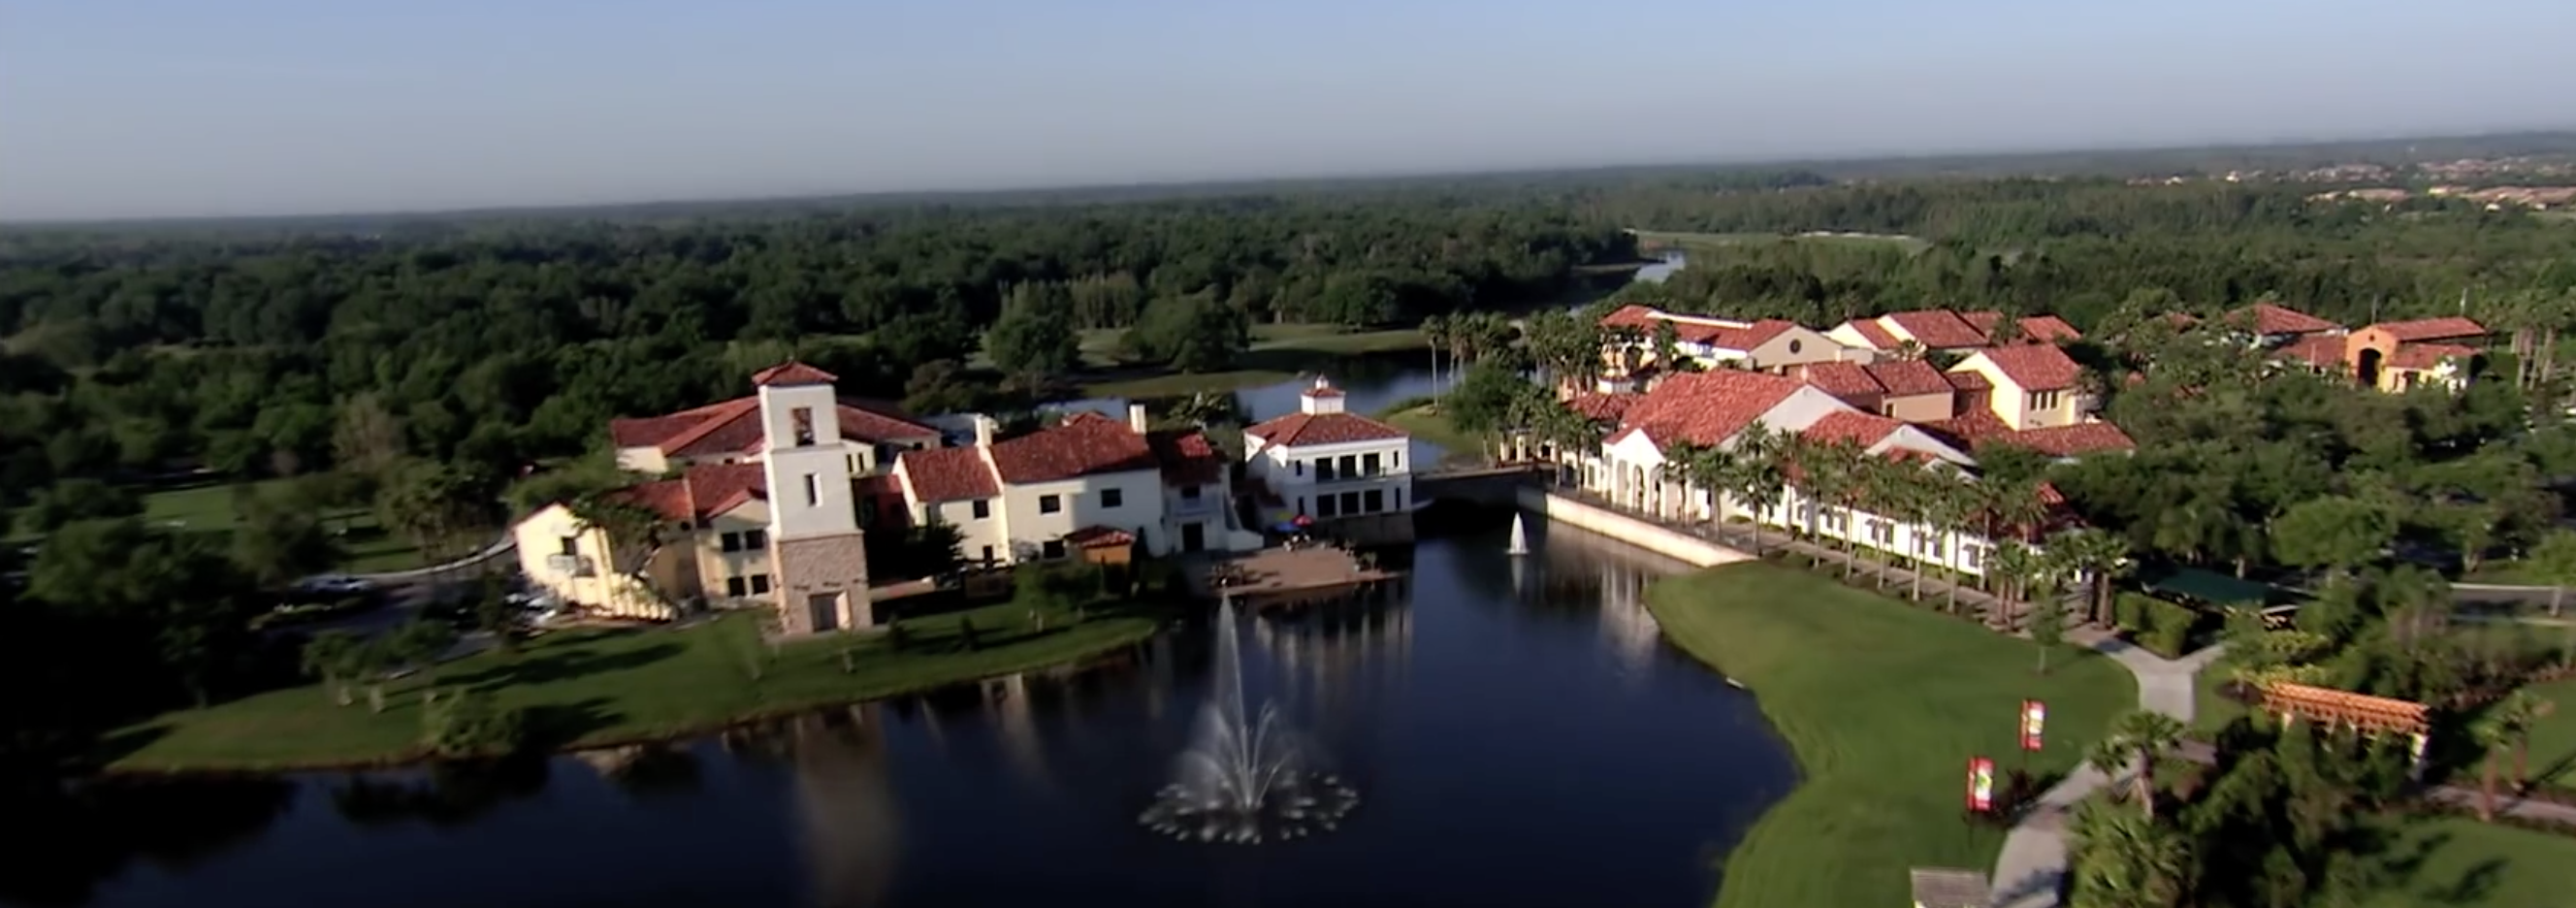 Home sales in Solivita and surrounding areas in Kissimmee and Orlando, FL.